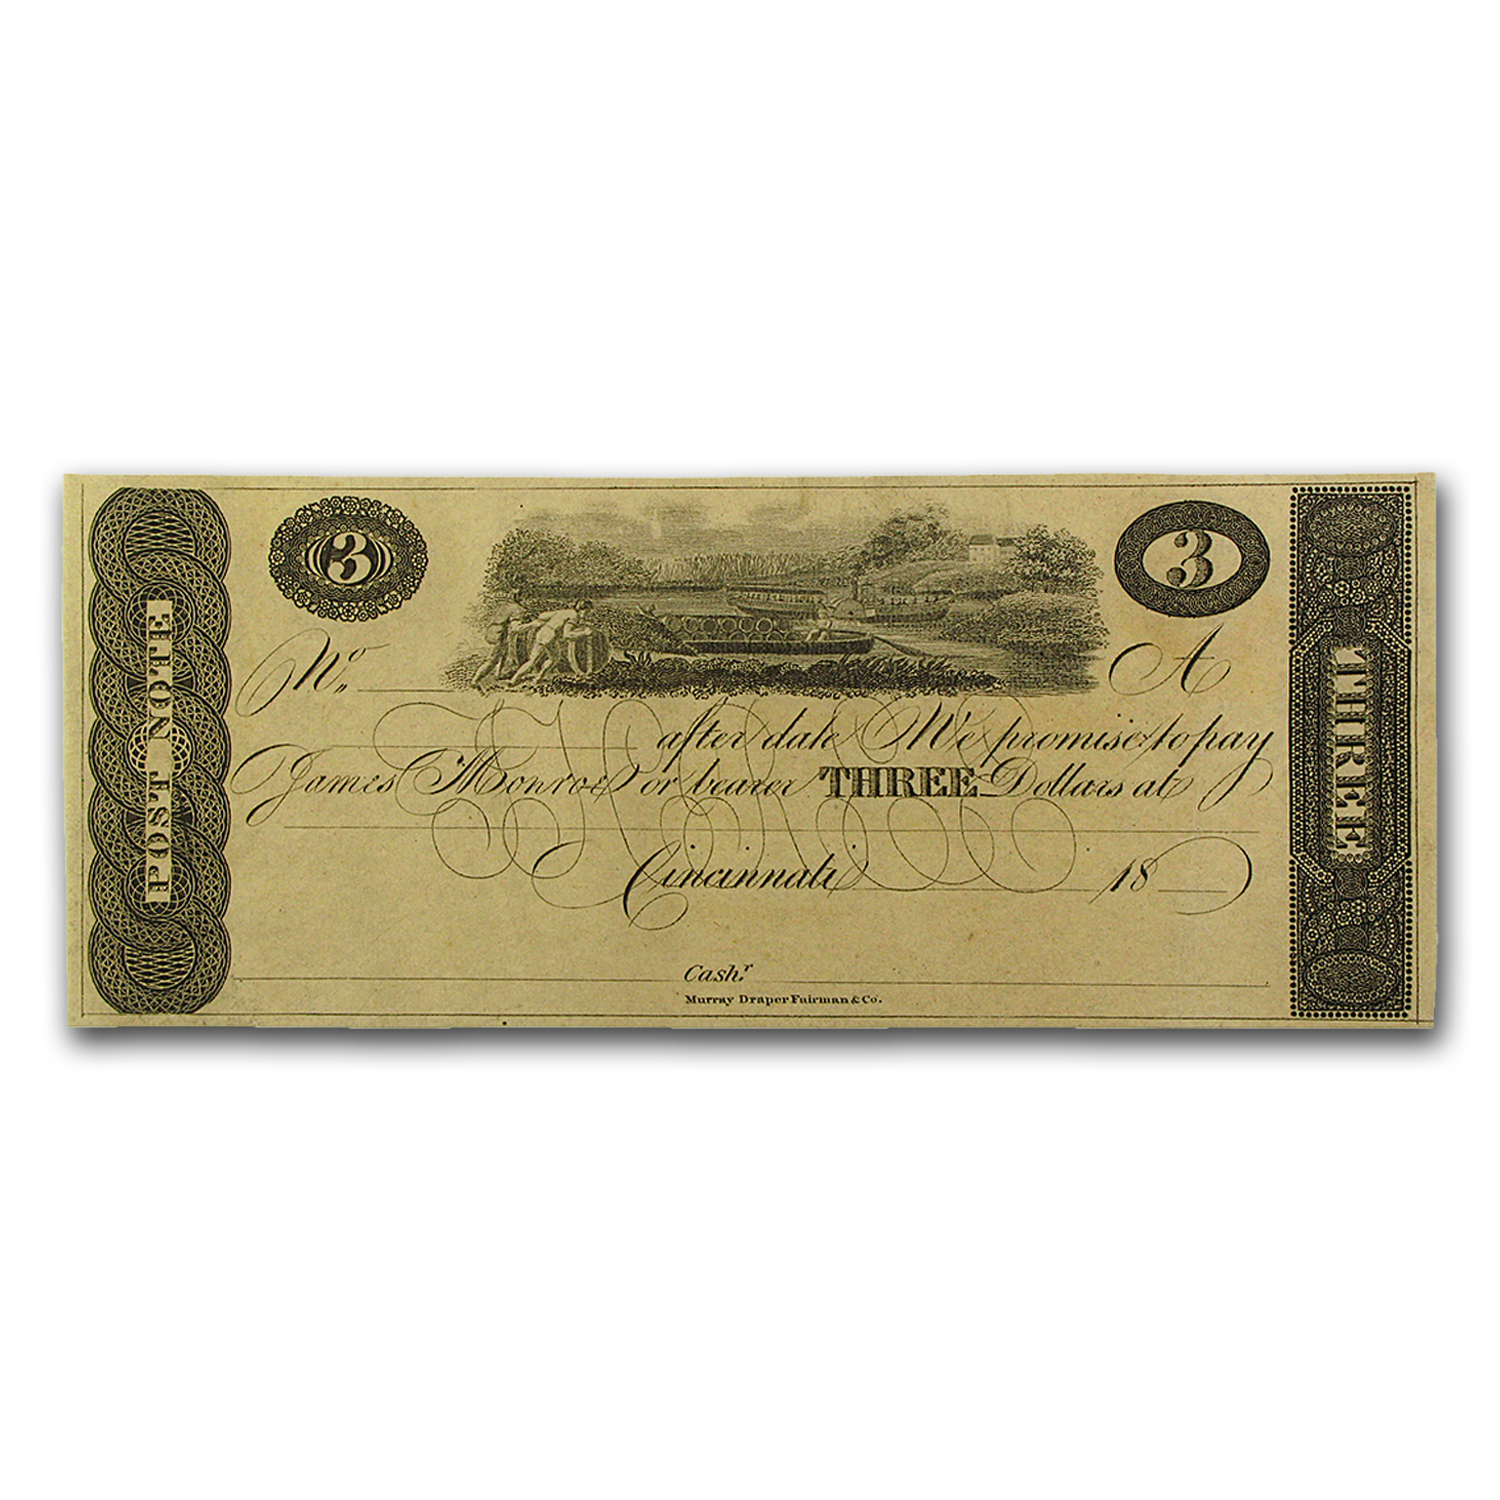 18__ Post Note from Cincinnati, OH $3.00 AU